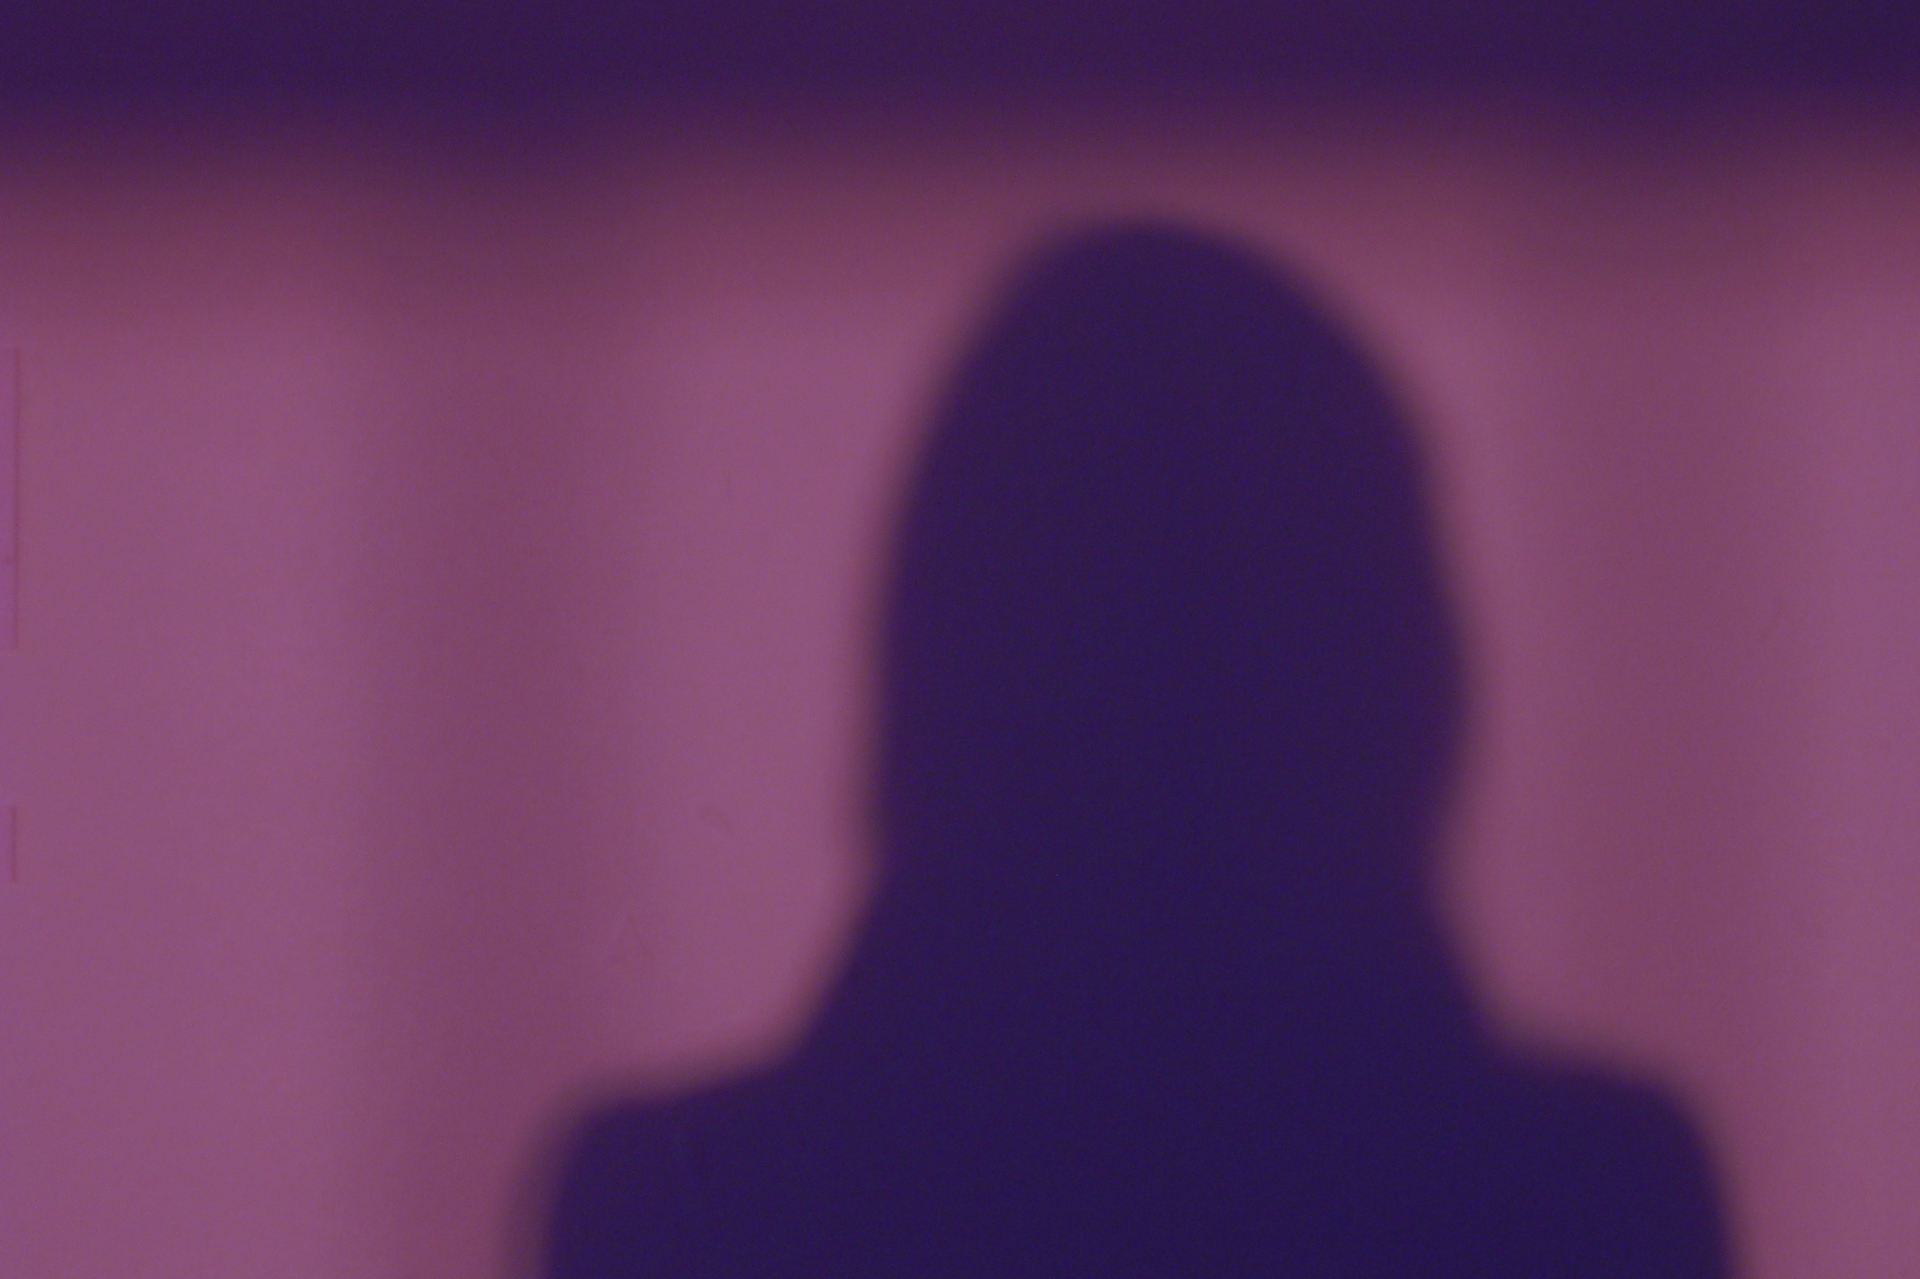 shadow portrait, shoulders up, purple shadow, purple background